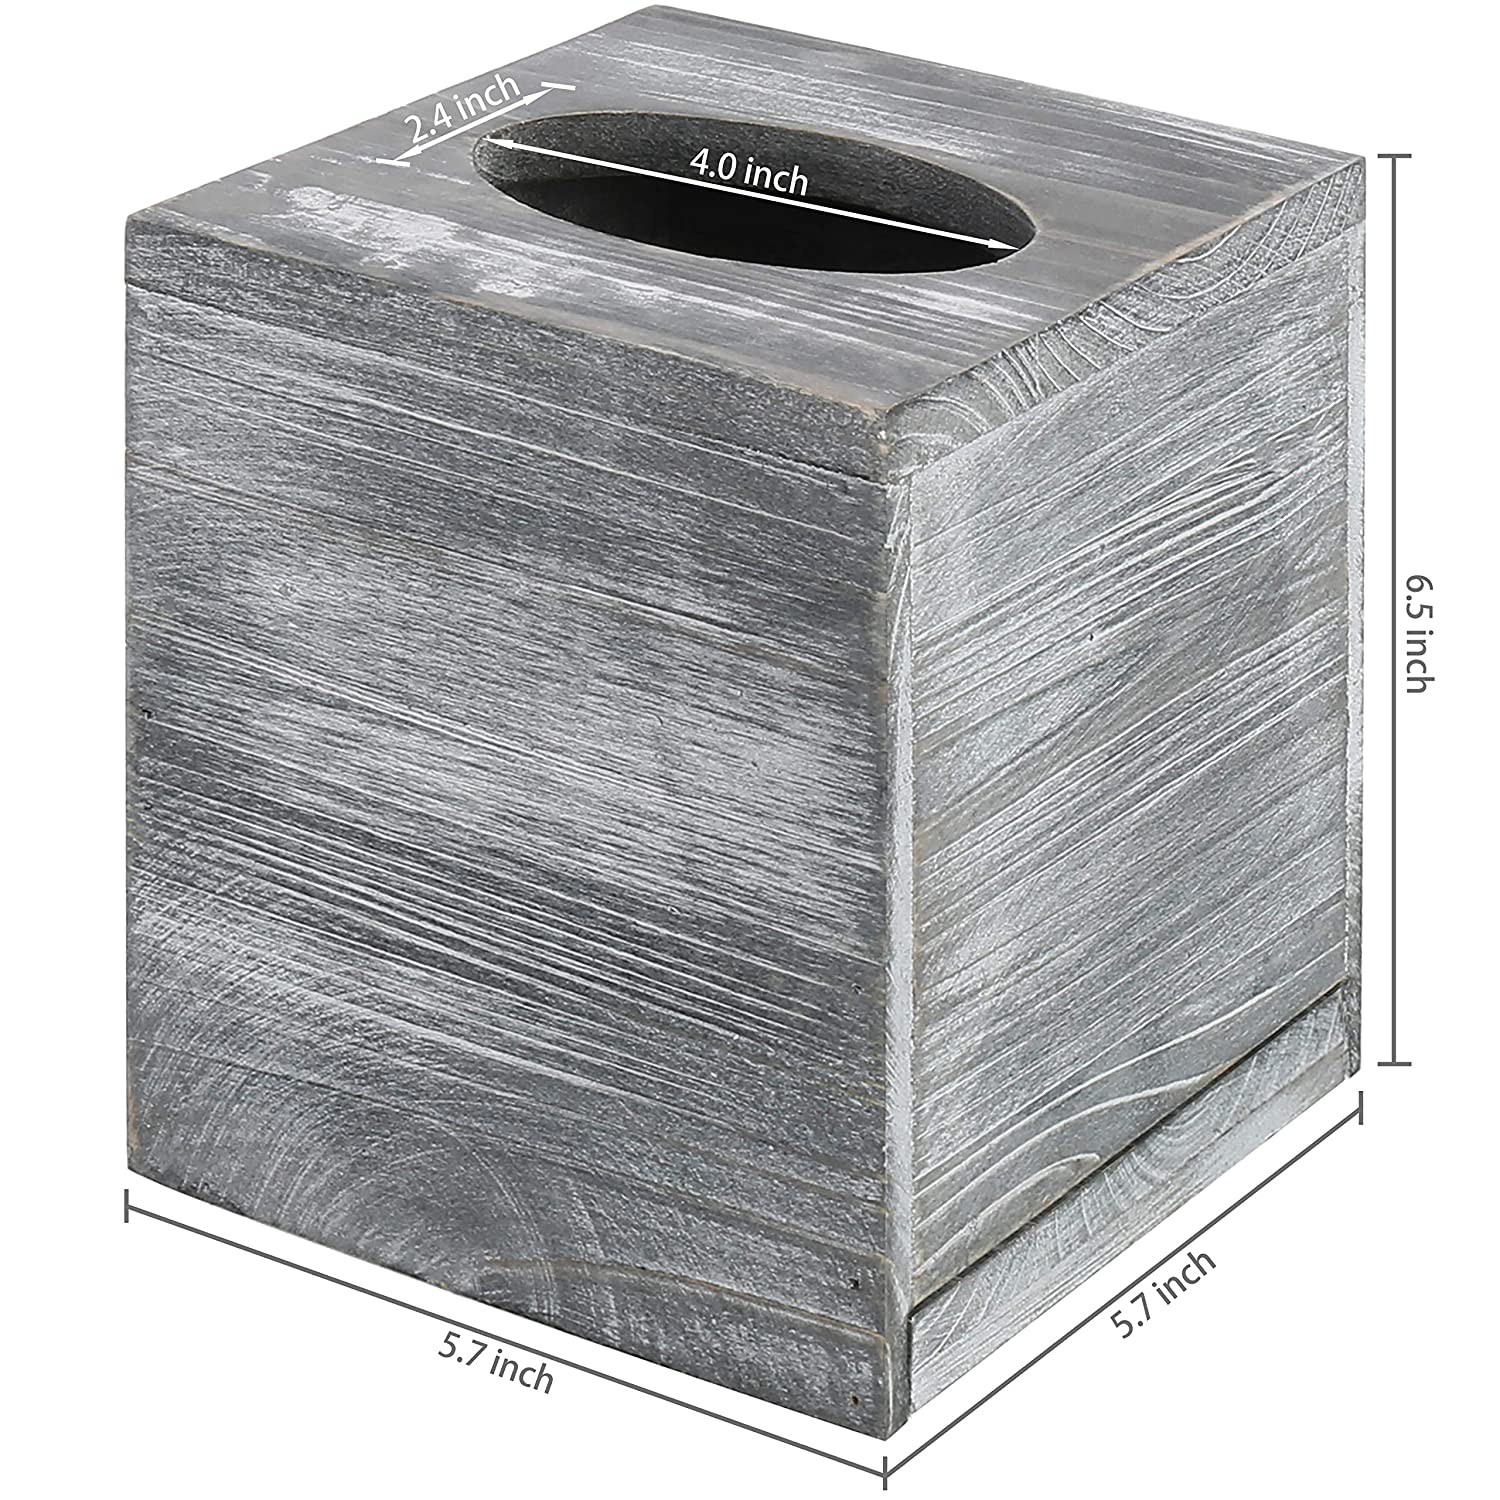 MyGift Vintage Gray Wood Square Tissue Box Cover with Slide-Out Bottom Panel